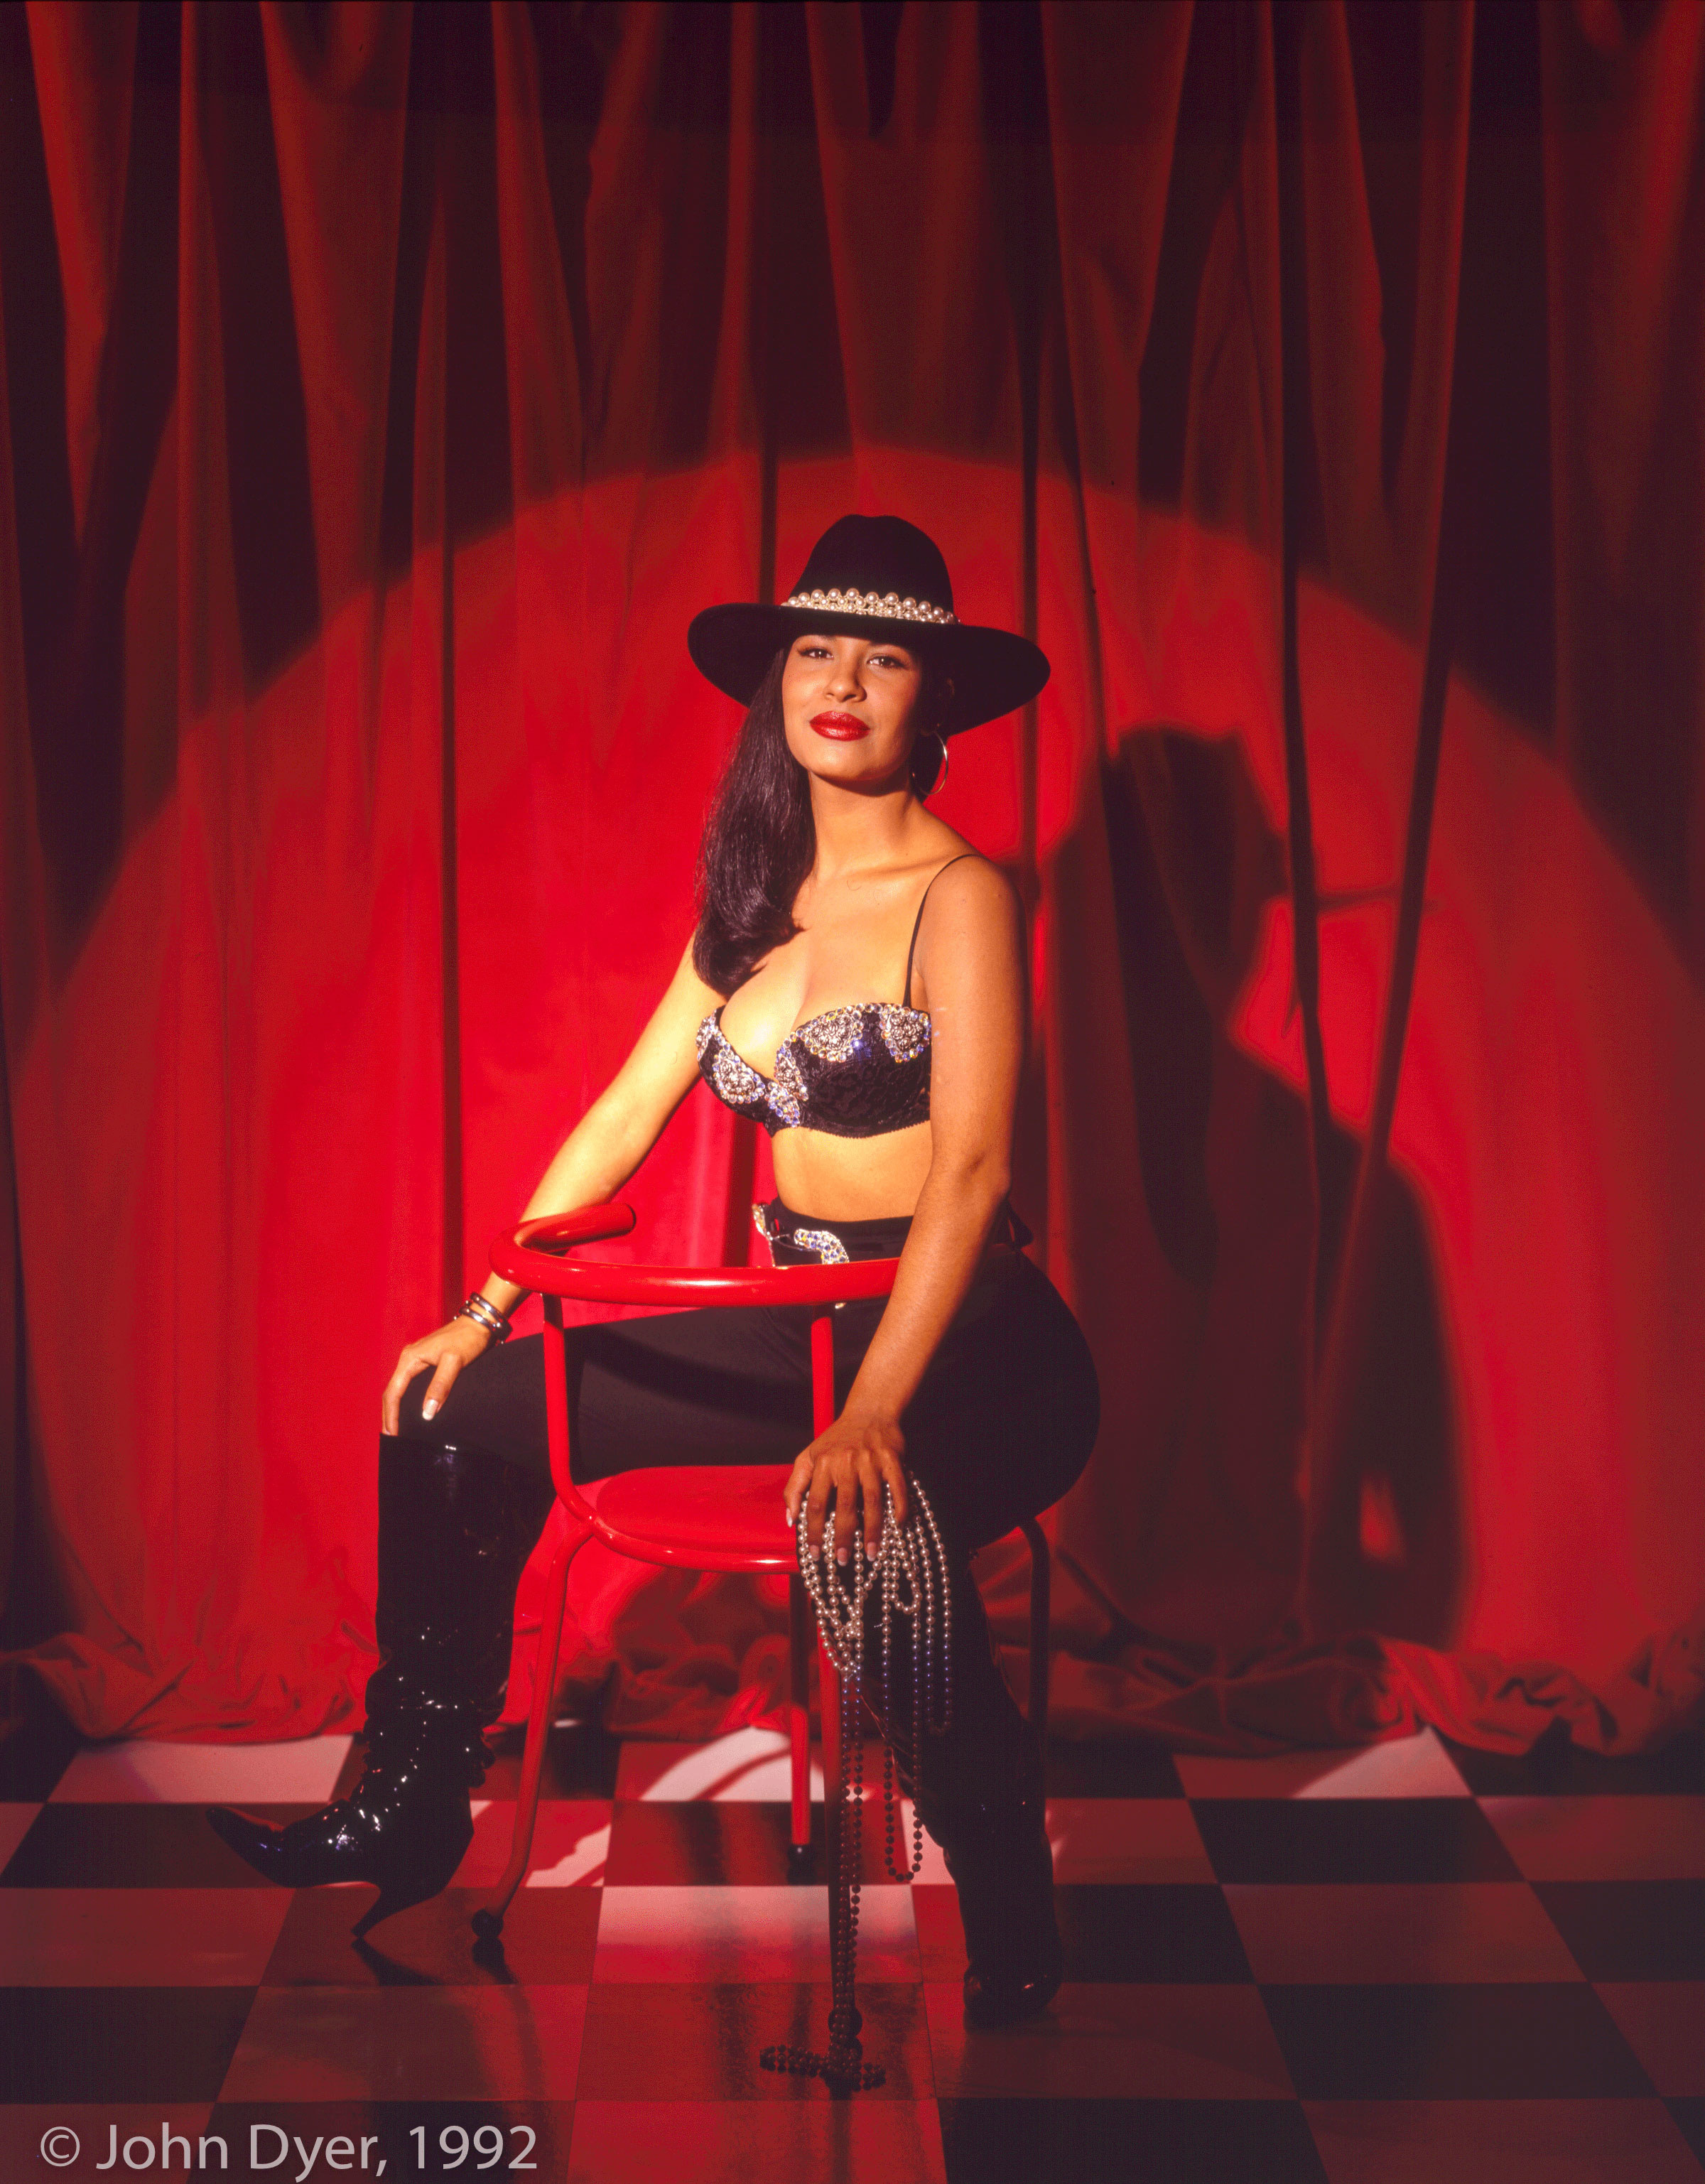 selena quintanilla smiling while sitting down for a photo